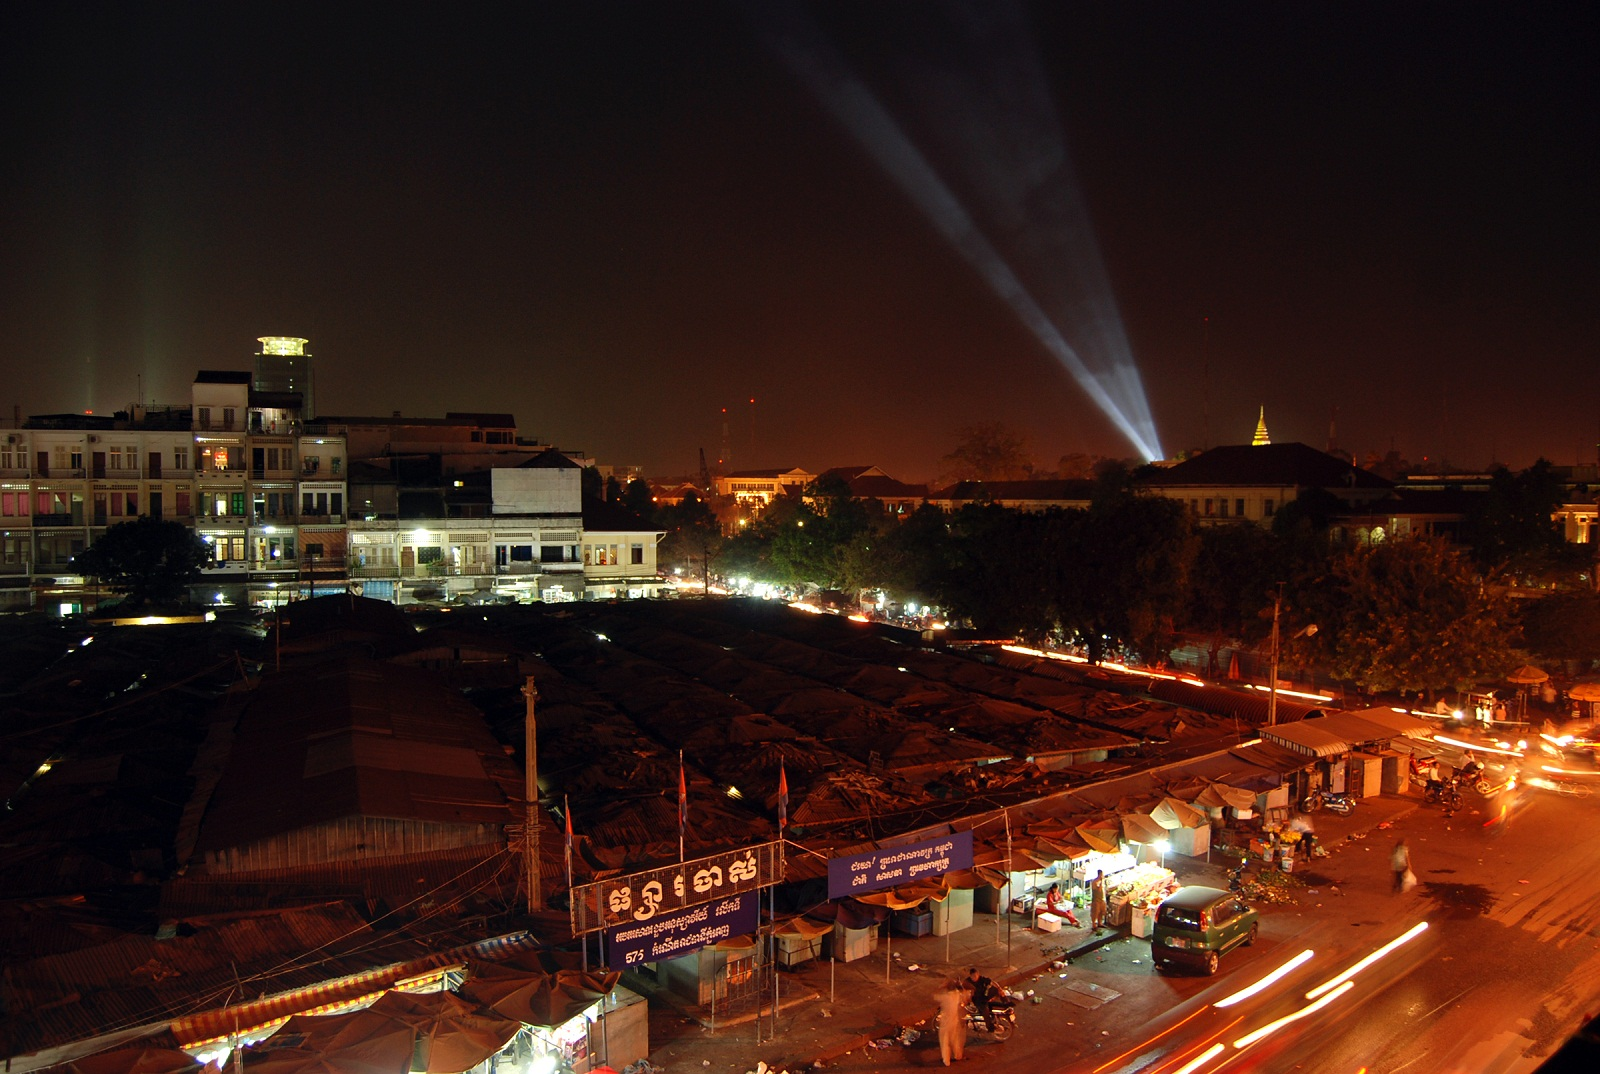 Wat Phnom, Cambodia, Lights in night